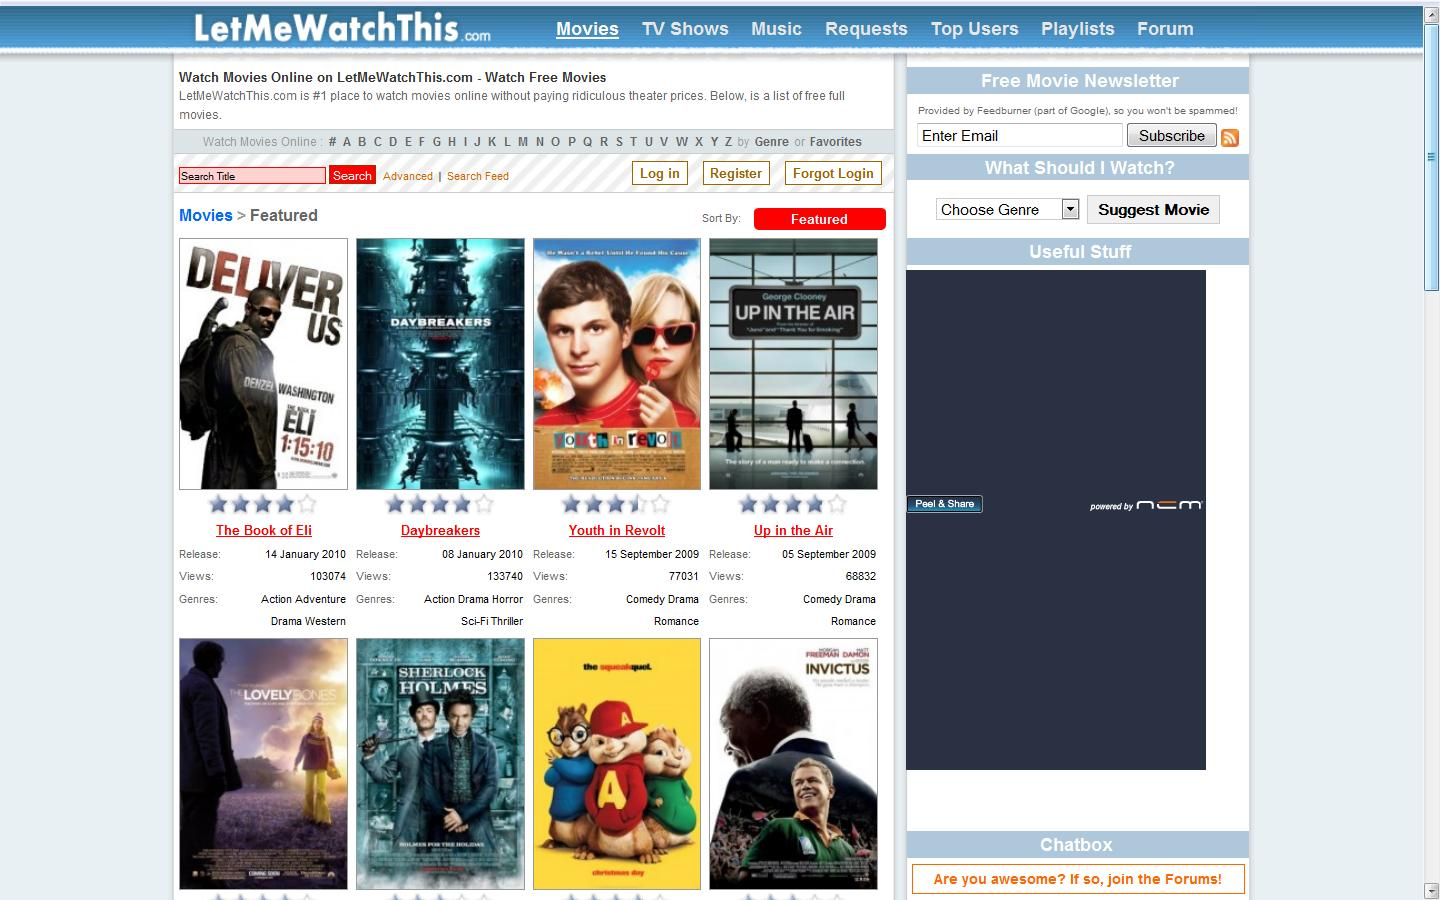 Top 11 Free Online Websites for Free Movie Watching - DVD/BD Multi-Solution Hub